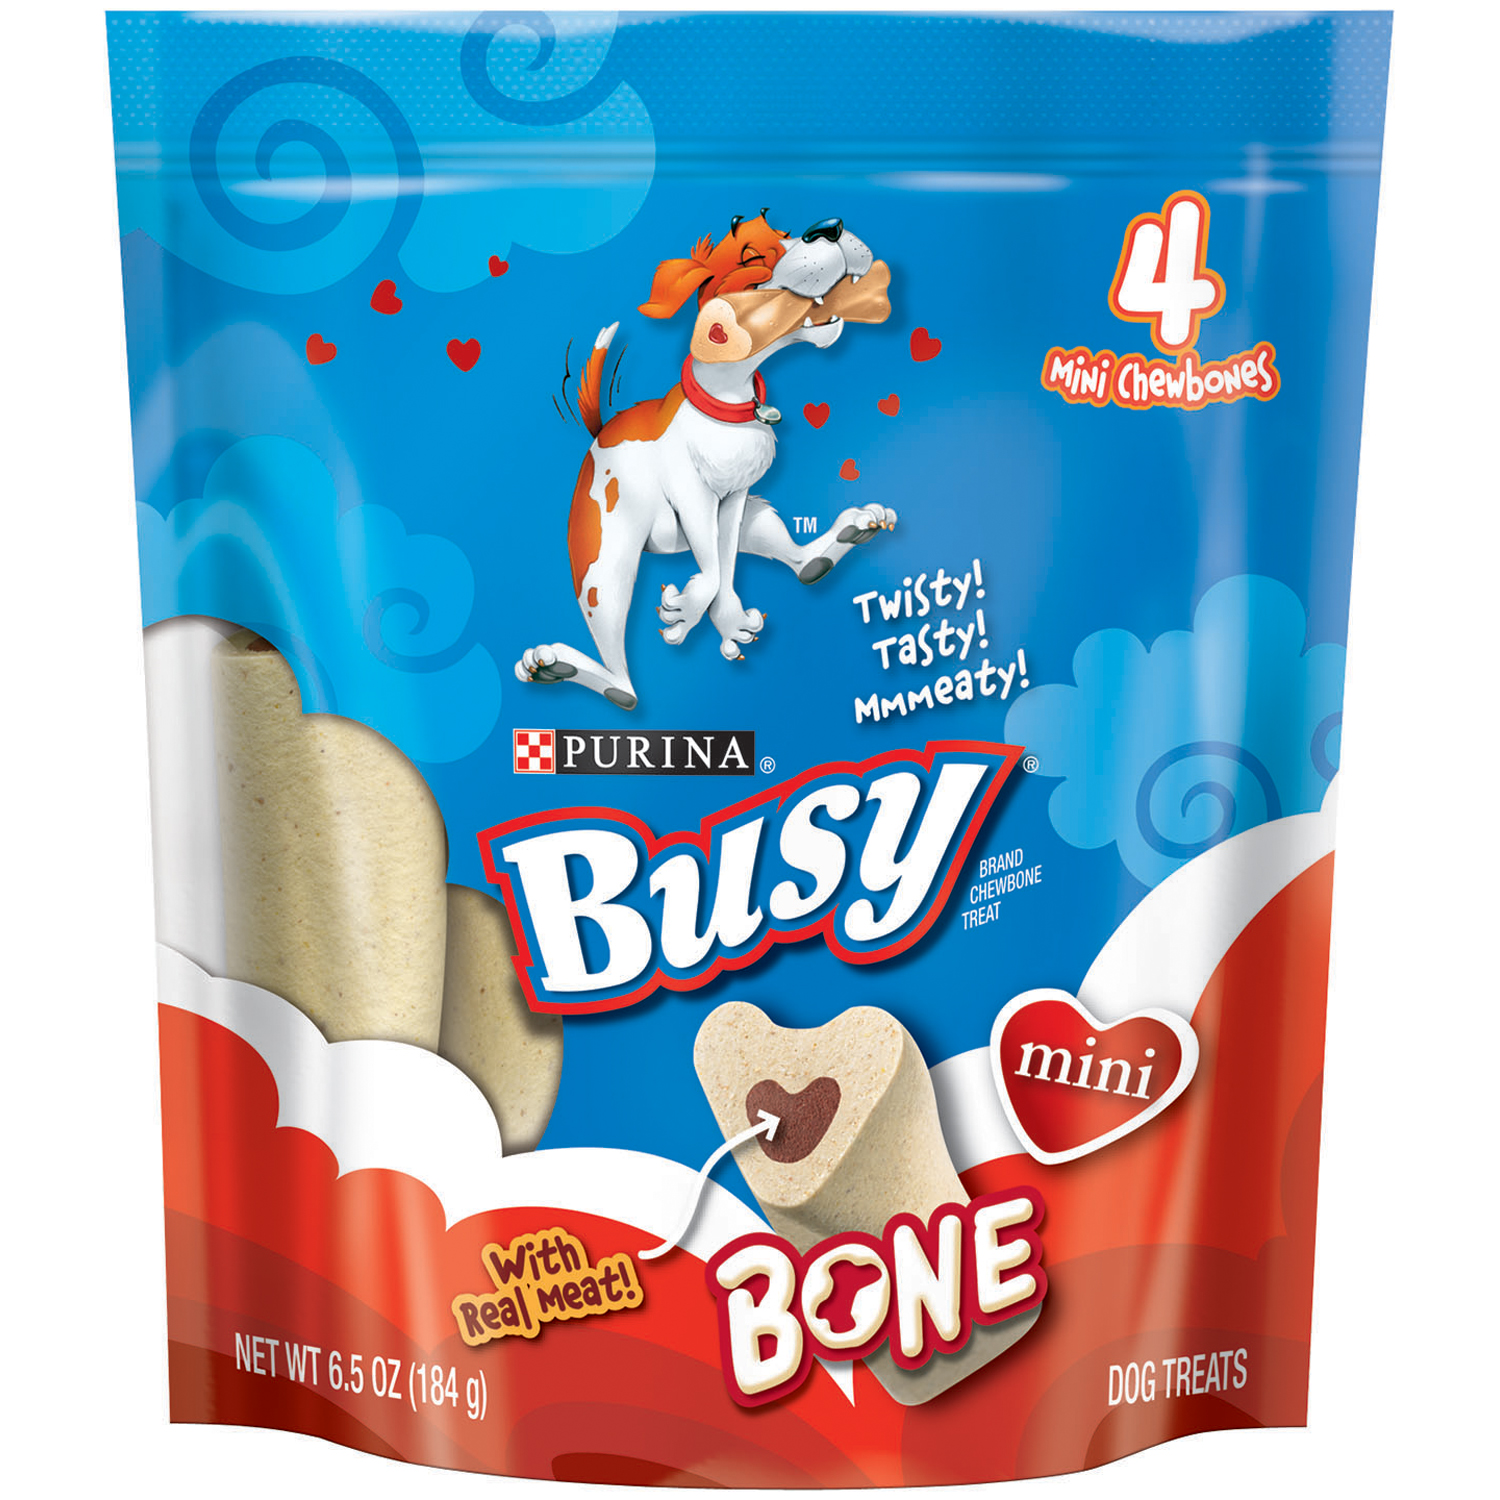 Purina Busy Bone Mini Dog Treats 4 ct Pouch